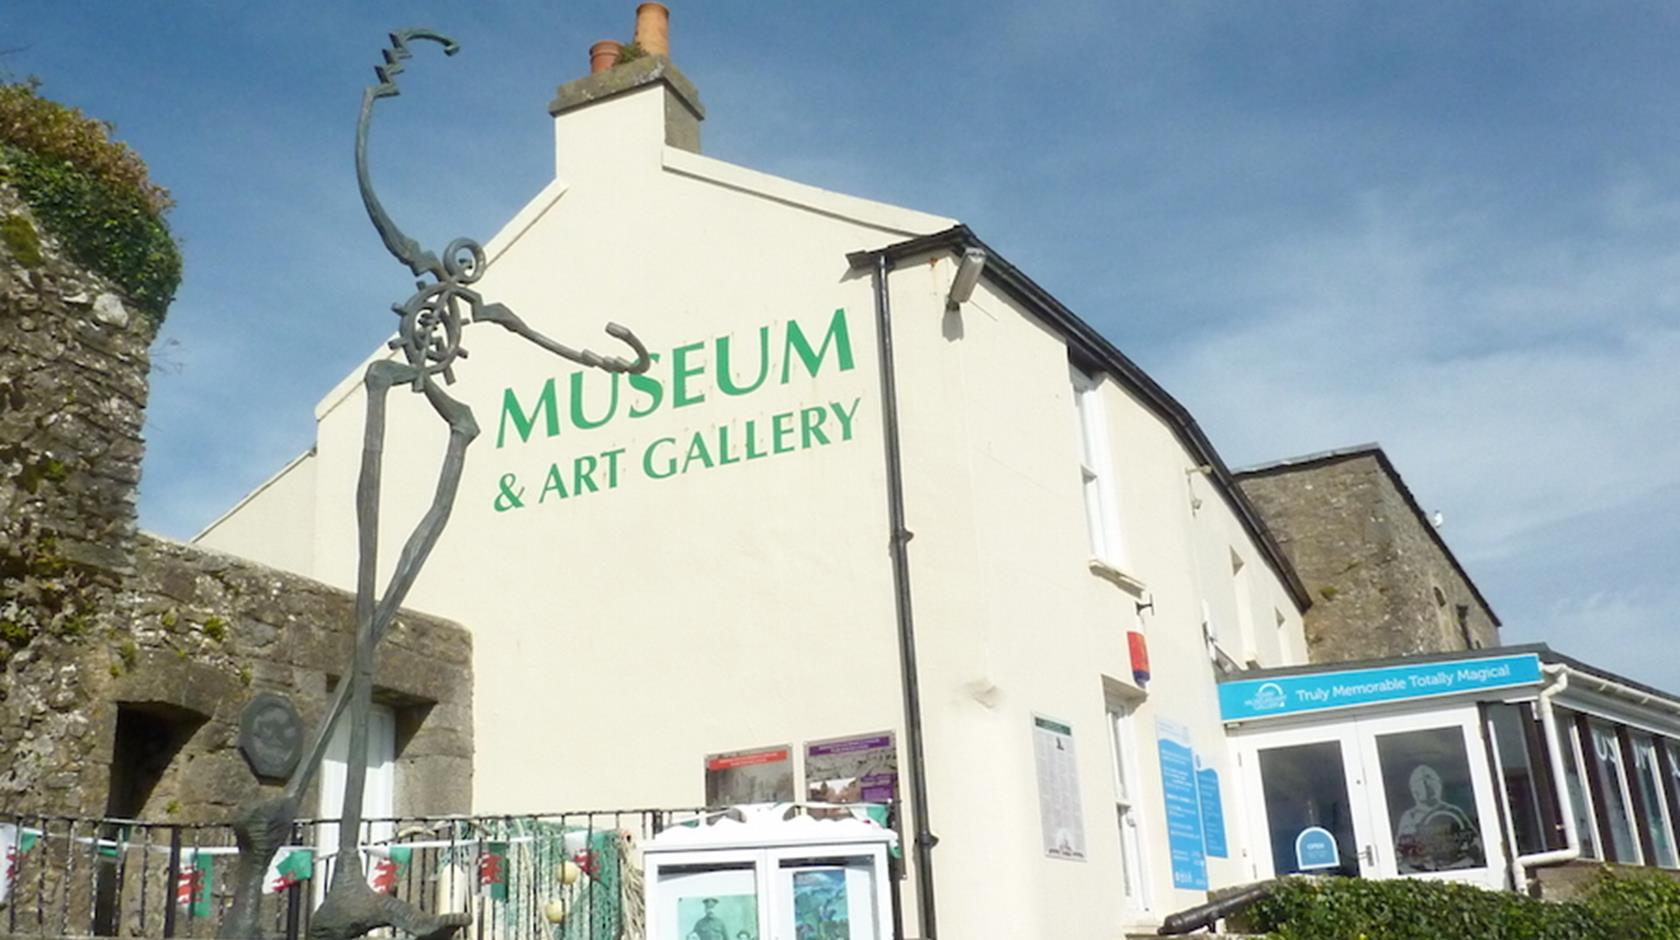 Tenby Museum and Art Gallery South Wales, Tenby Museum and Art Gallery | Day Out With The Kids